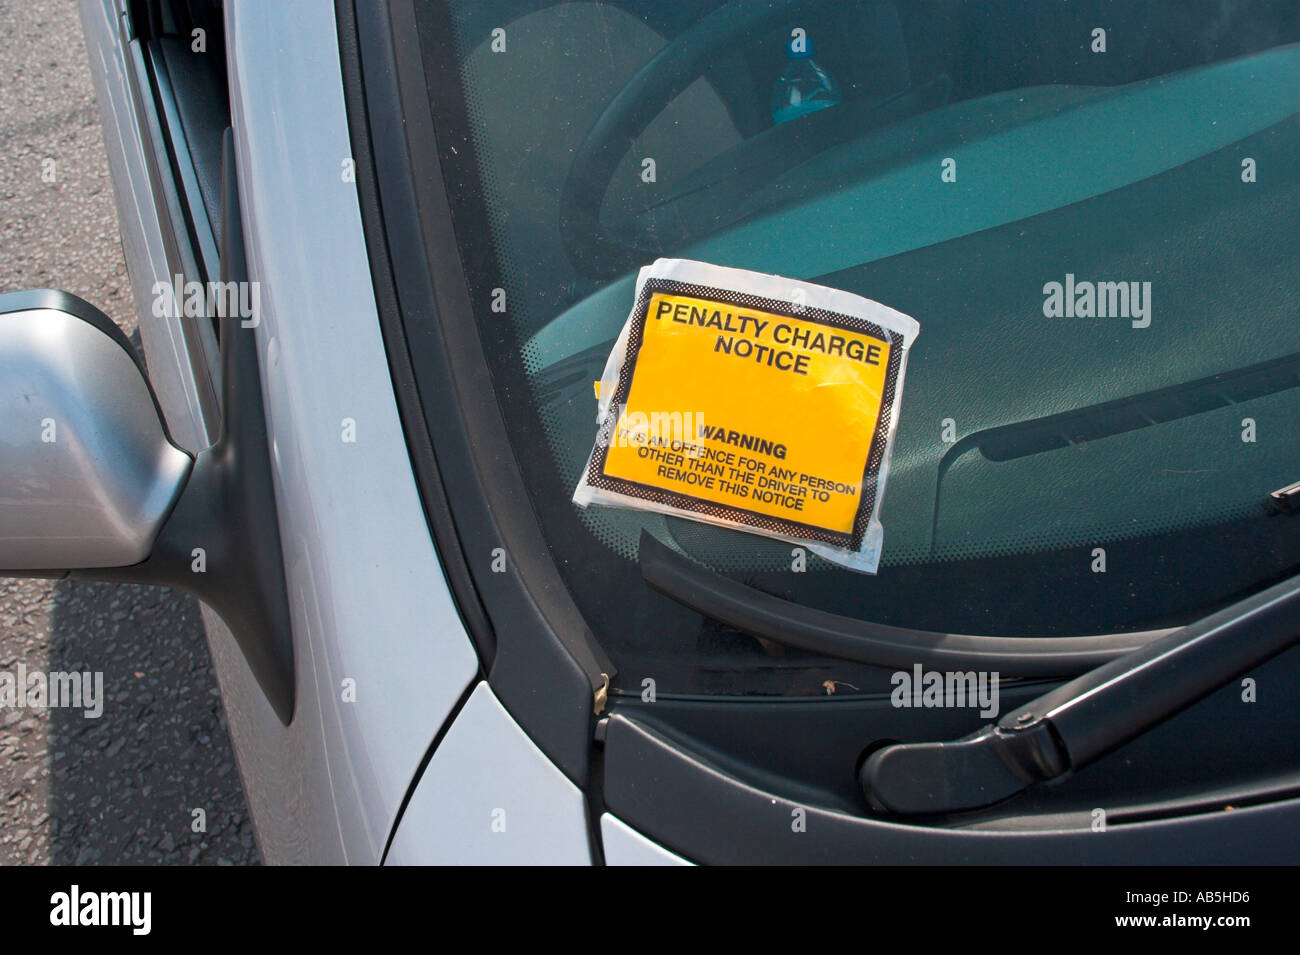 Penalty Charge Notice ticket on parked car in London England - Stock Image